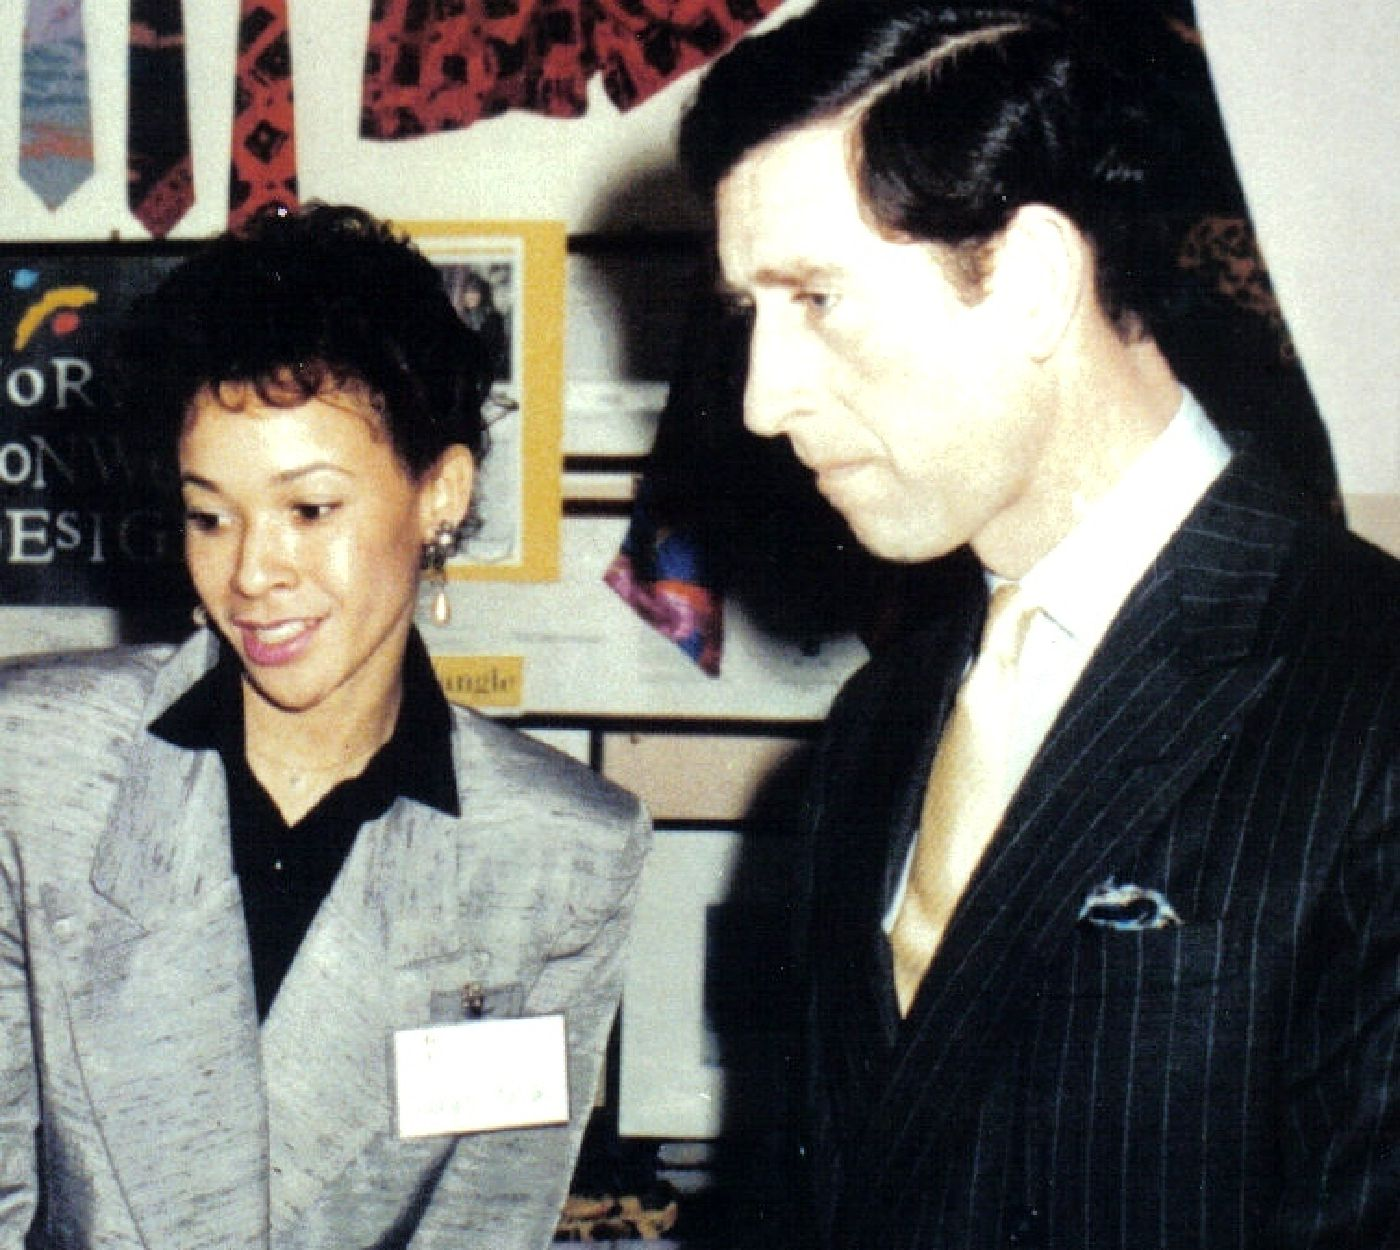 Wendy Souter with HRH Prince Charles at the Opening of OTC UK in 1988